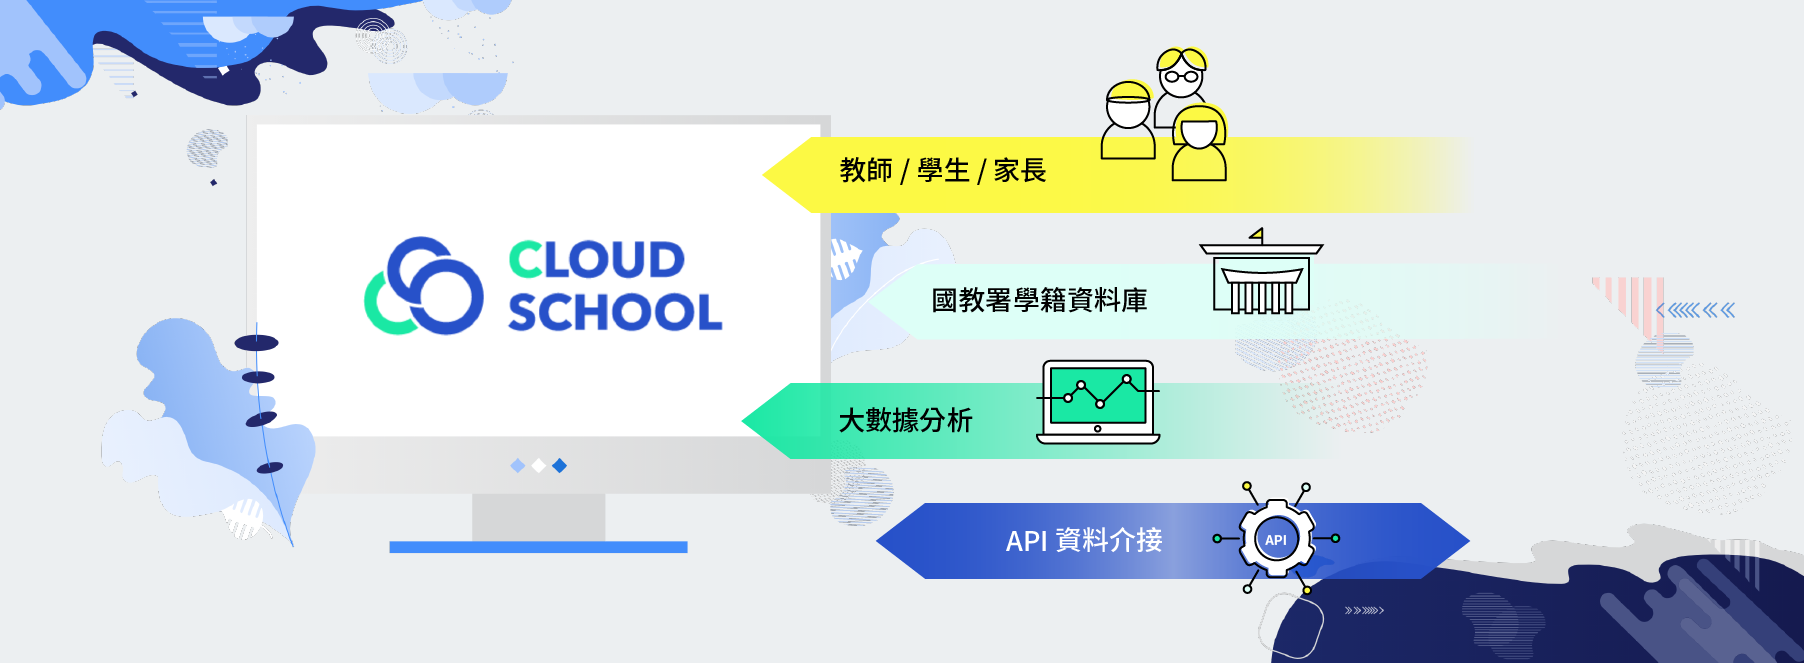 Cloud School